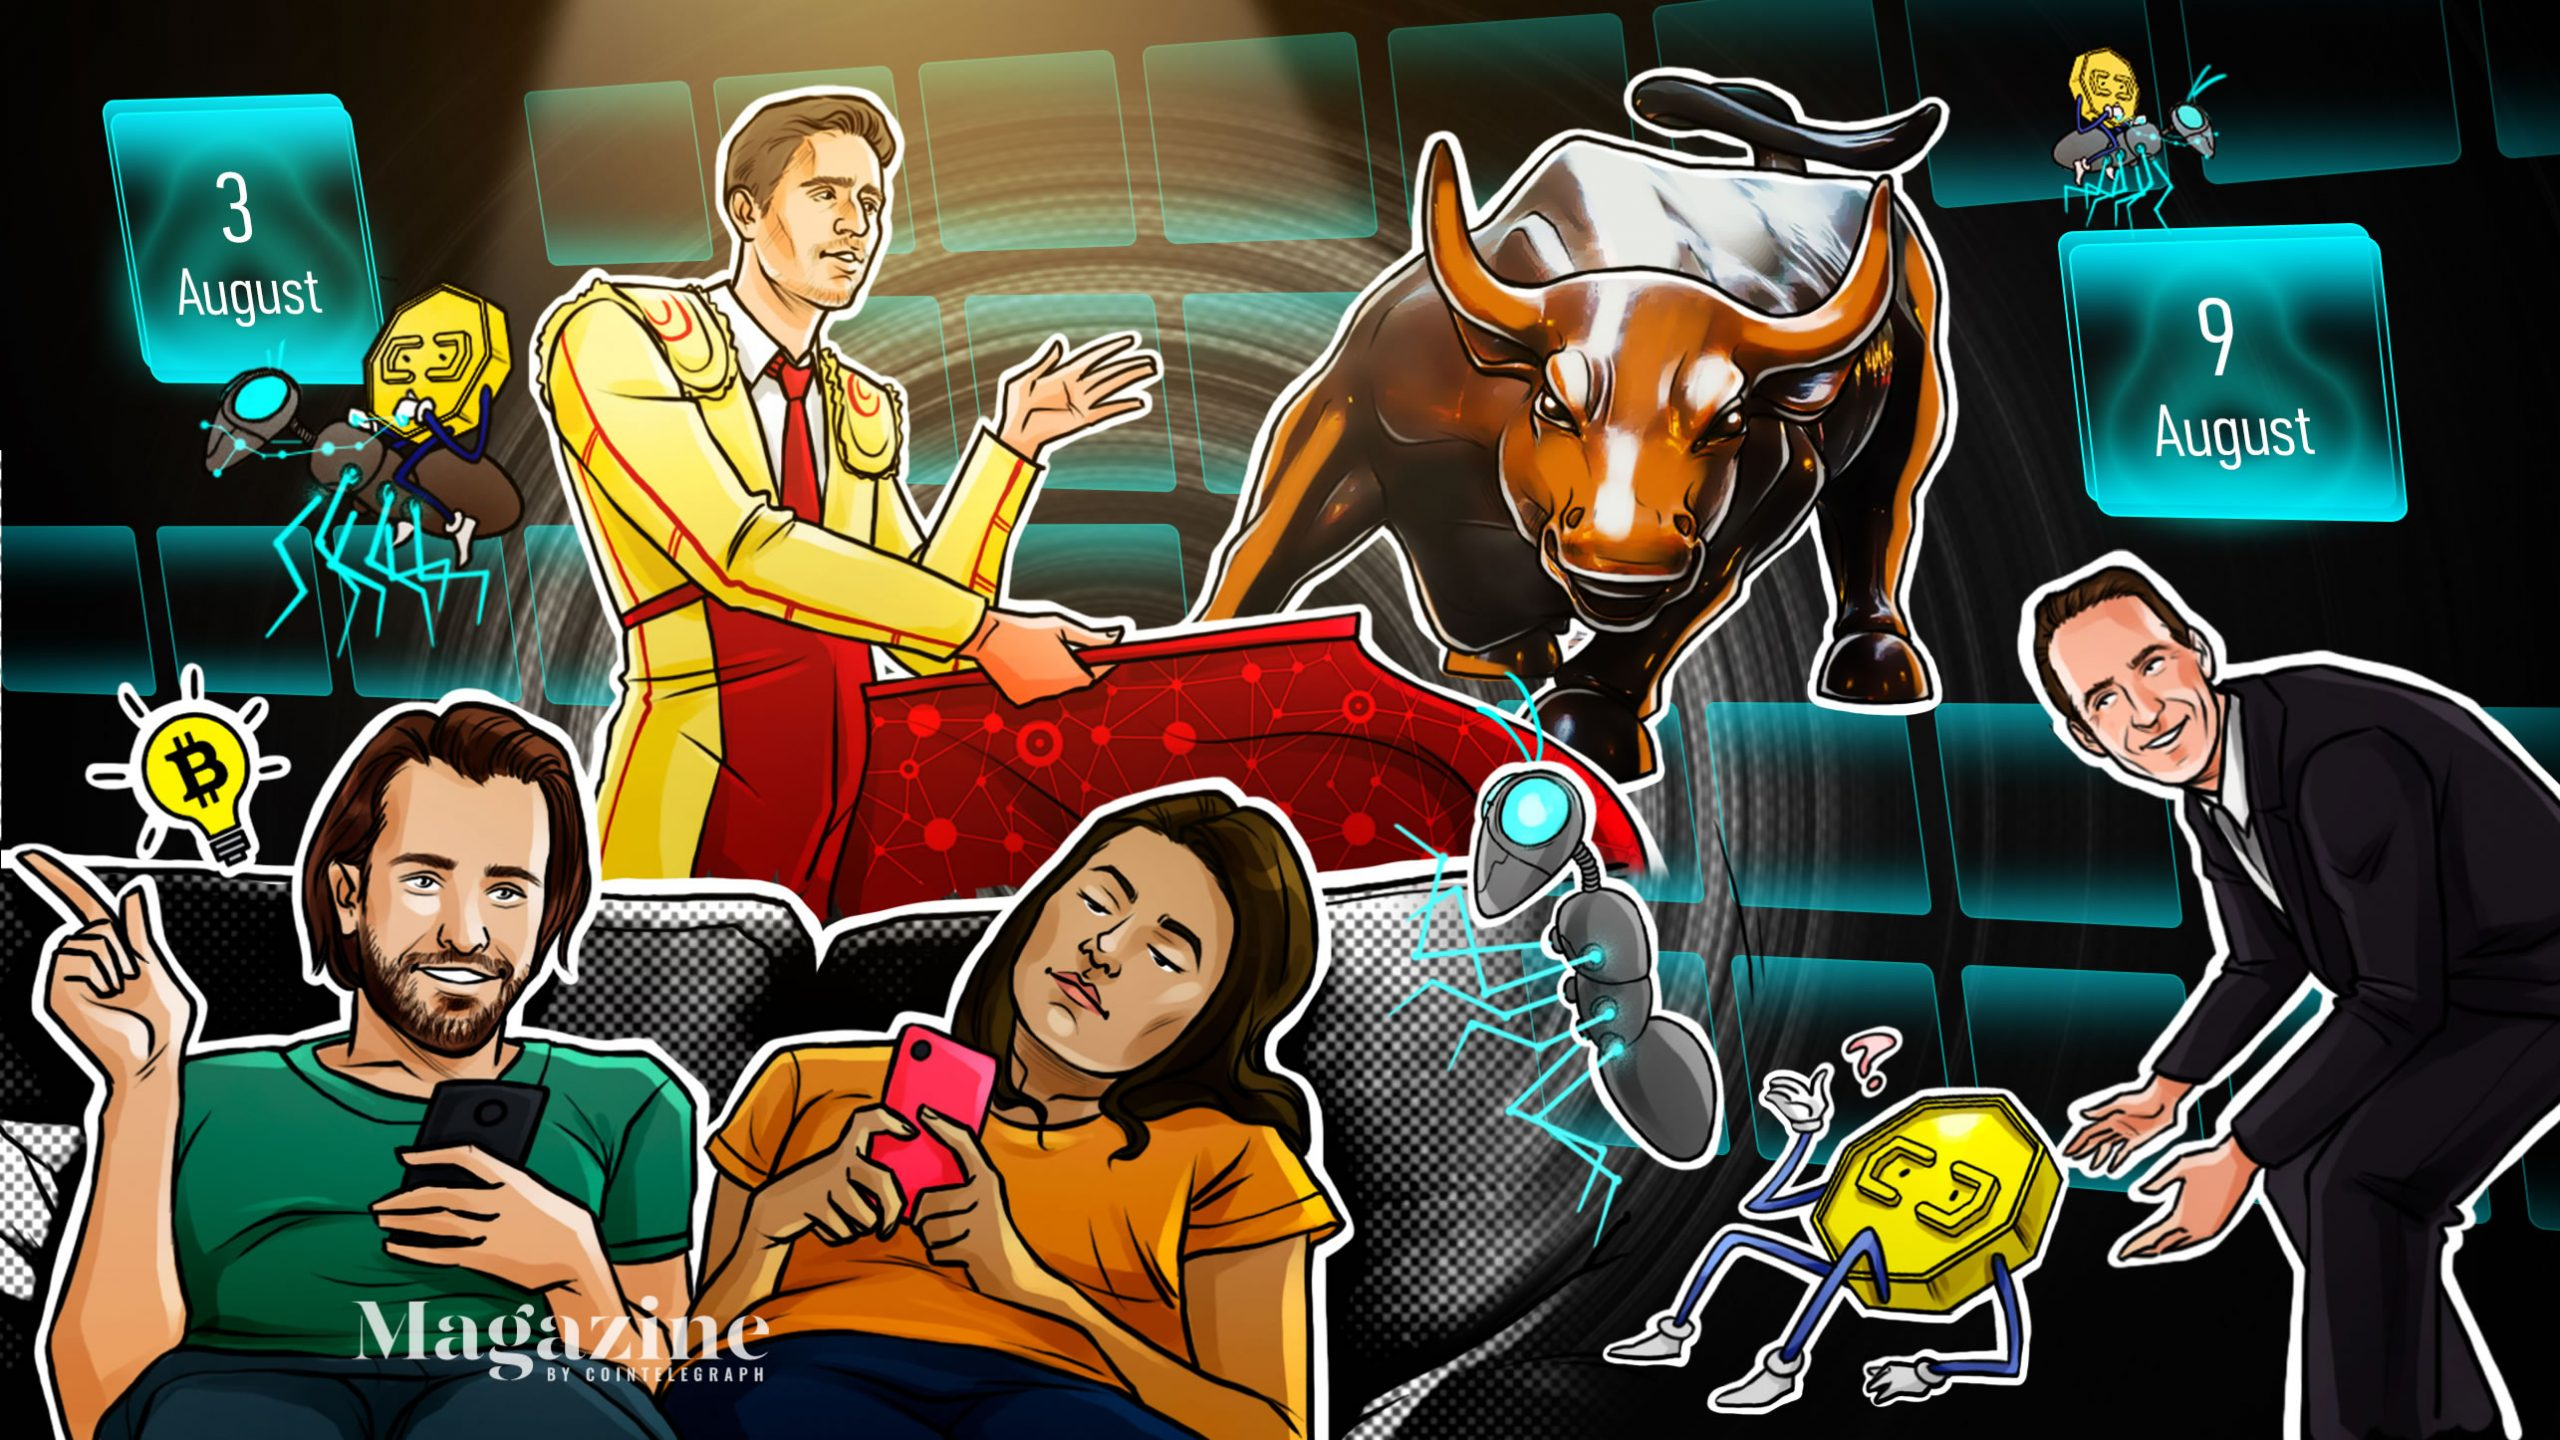 BTC at Crucial Level, When to Buy the Dip, Twitter Hack Trial Fiasco: Hodler's Digest, Aug. 3–9